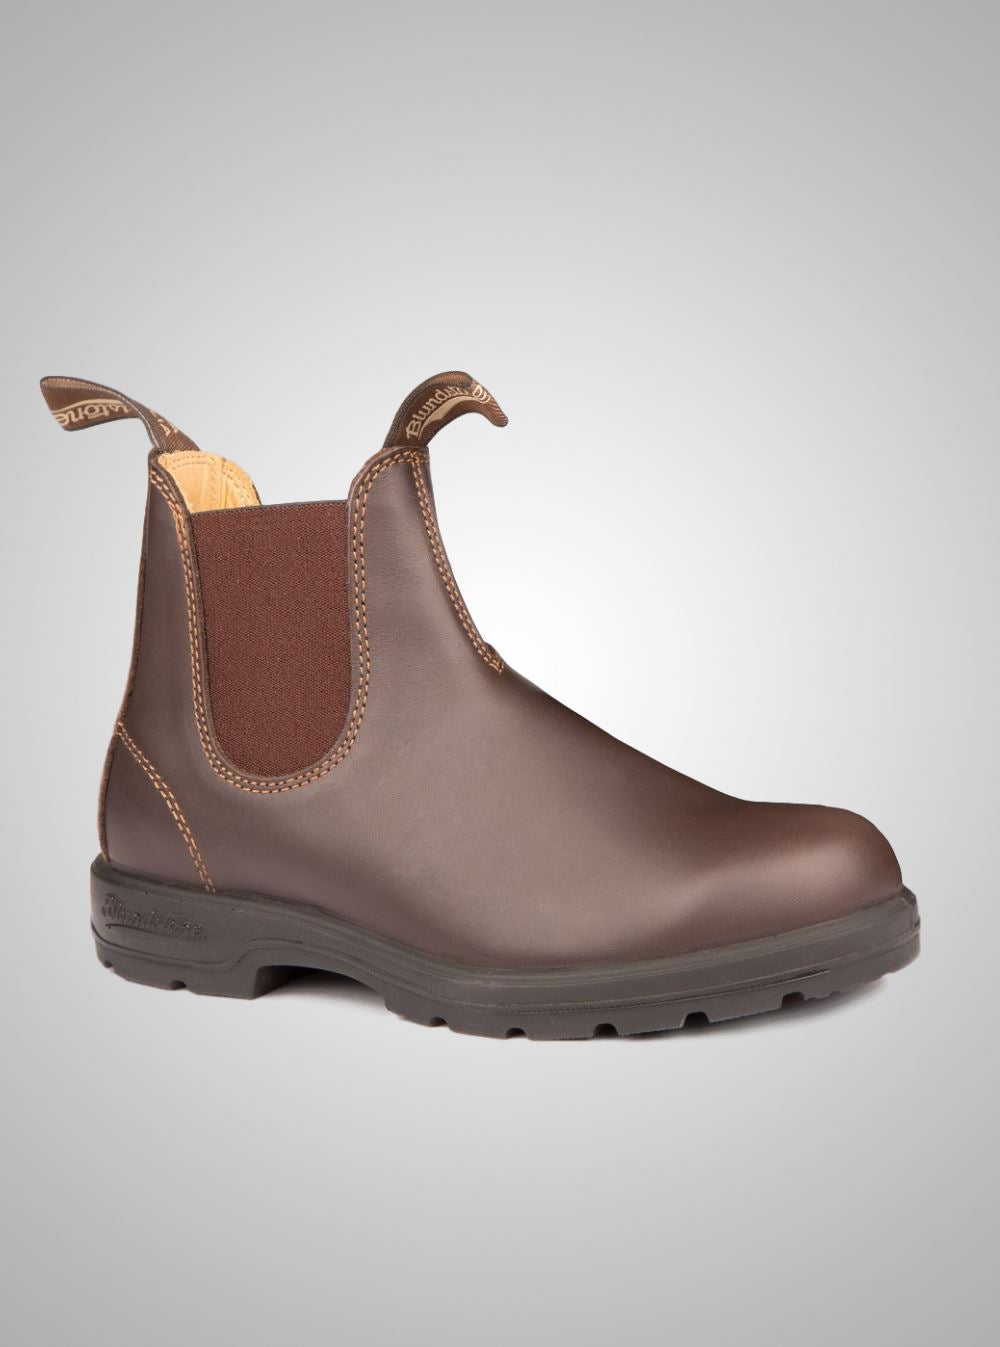 Blundstone 550 - The Leather Lined in Walnut